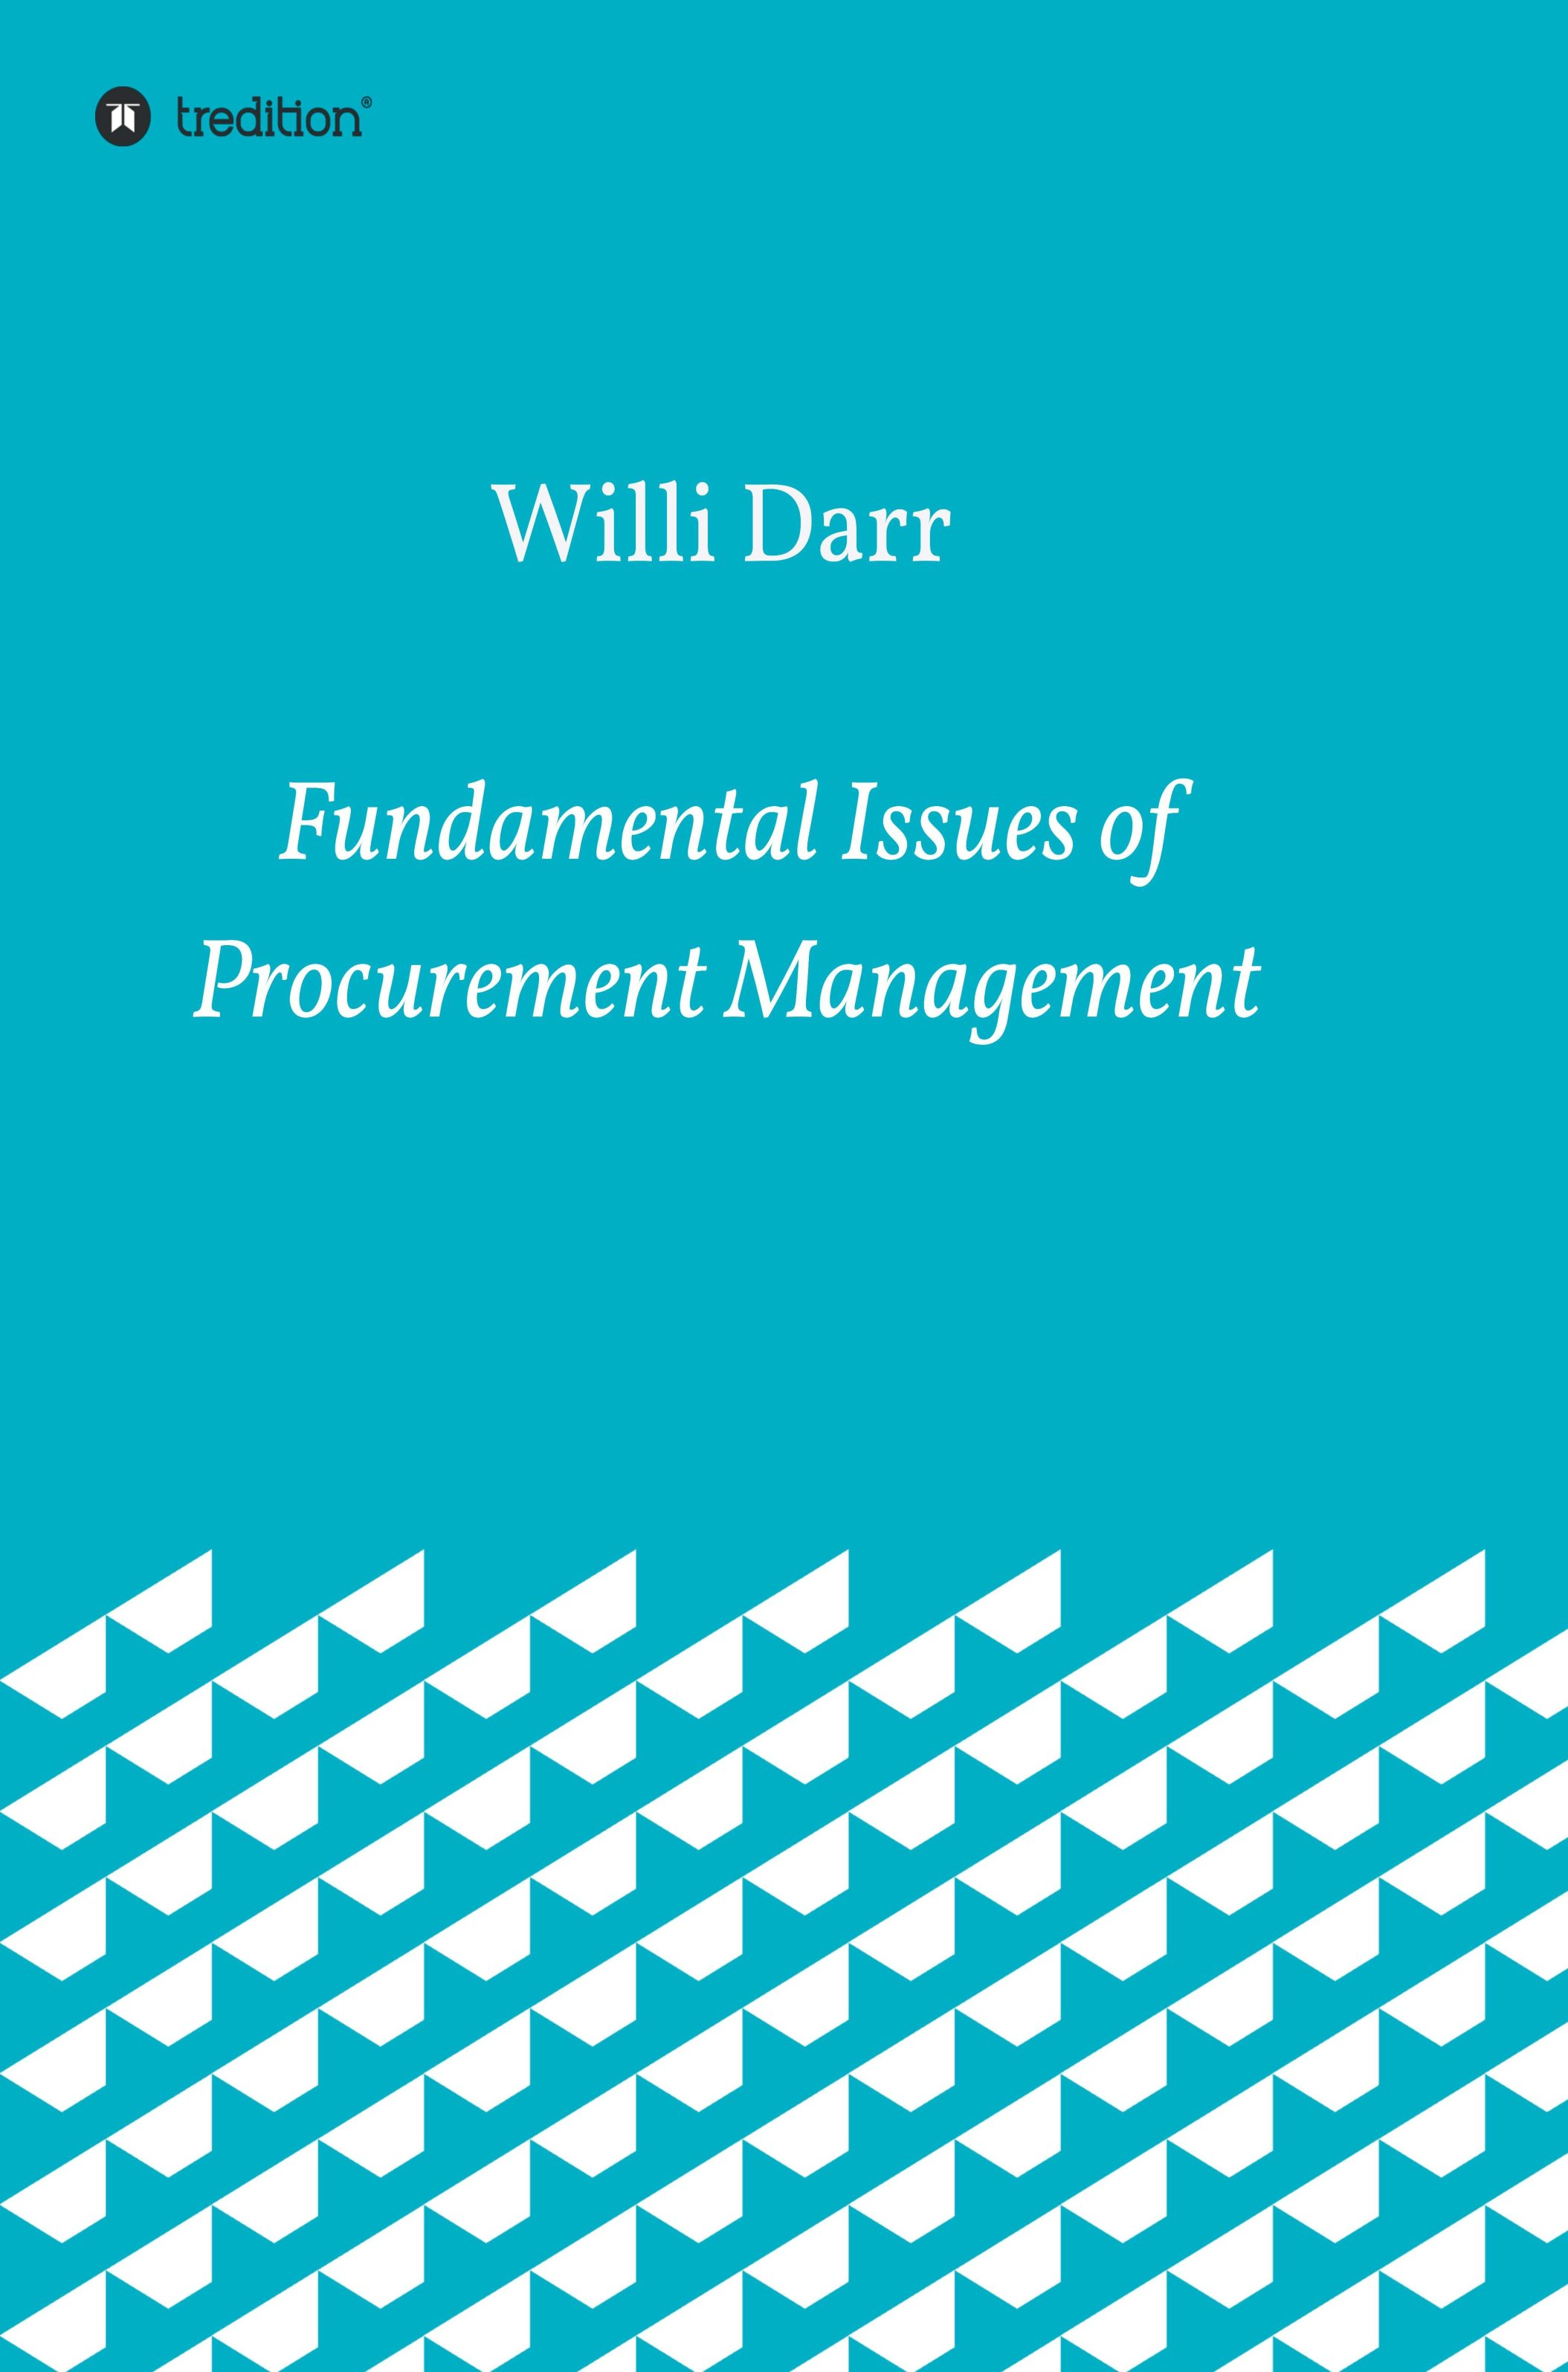 Fundamental Issues of Procurement Management - Insights into efficient purchasing management